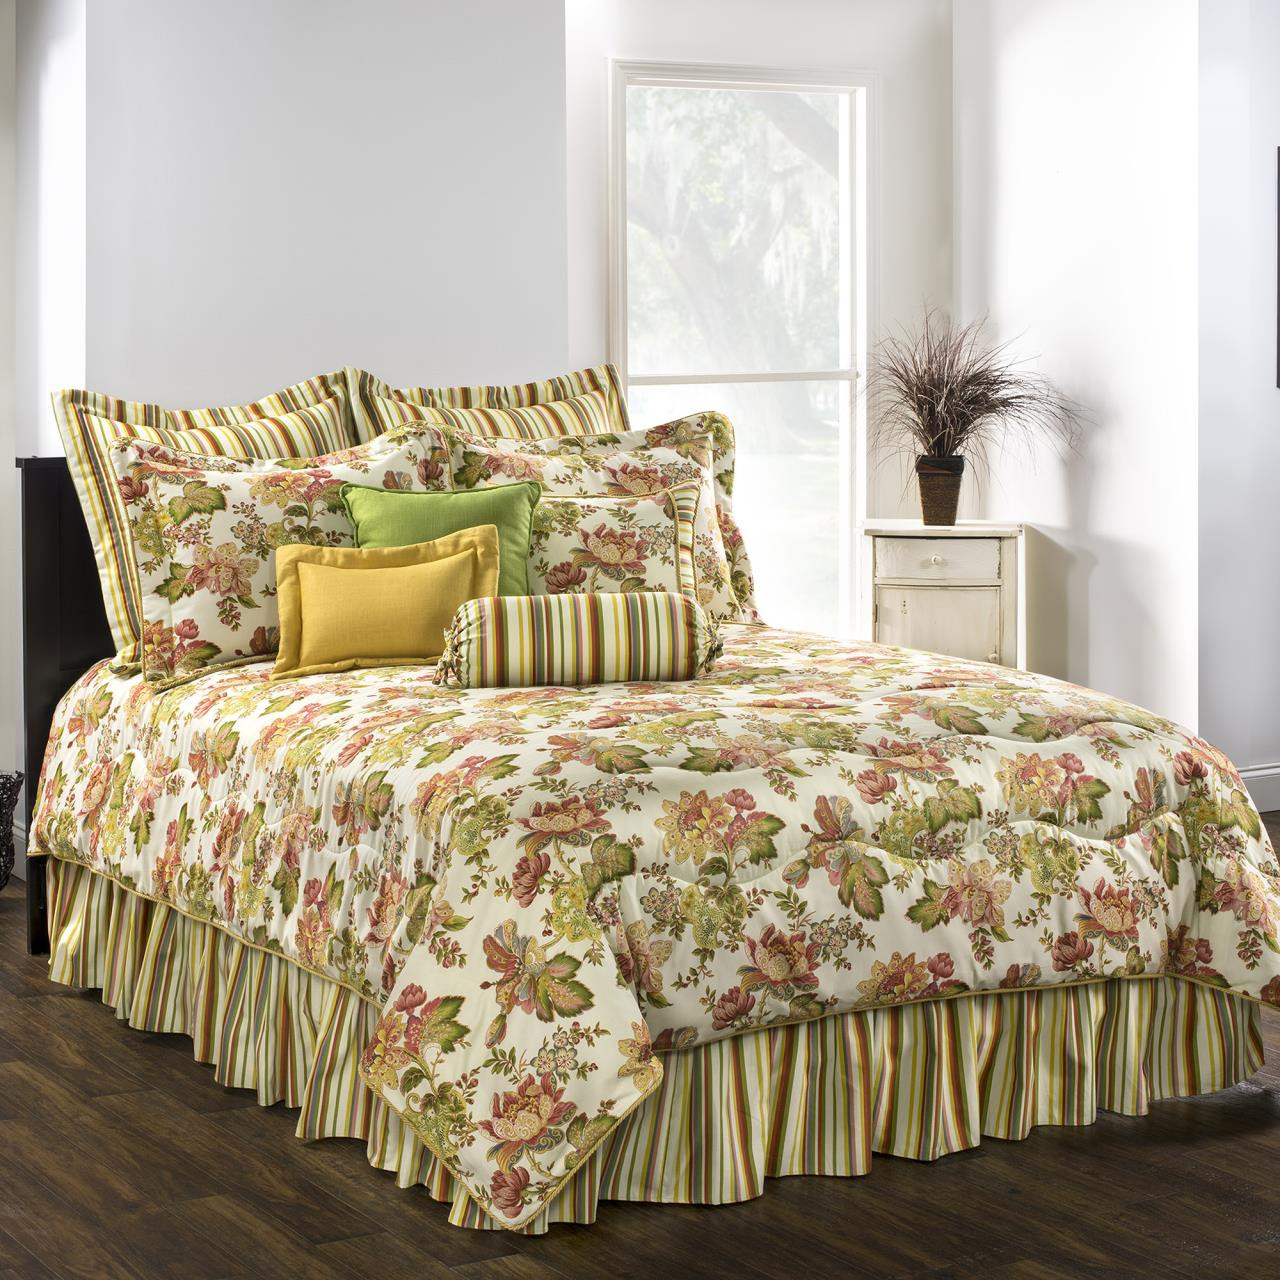 Luxuiarance Bedding Collection -